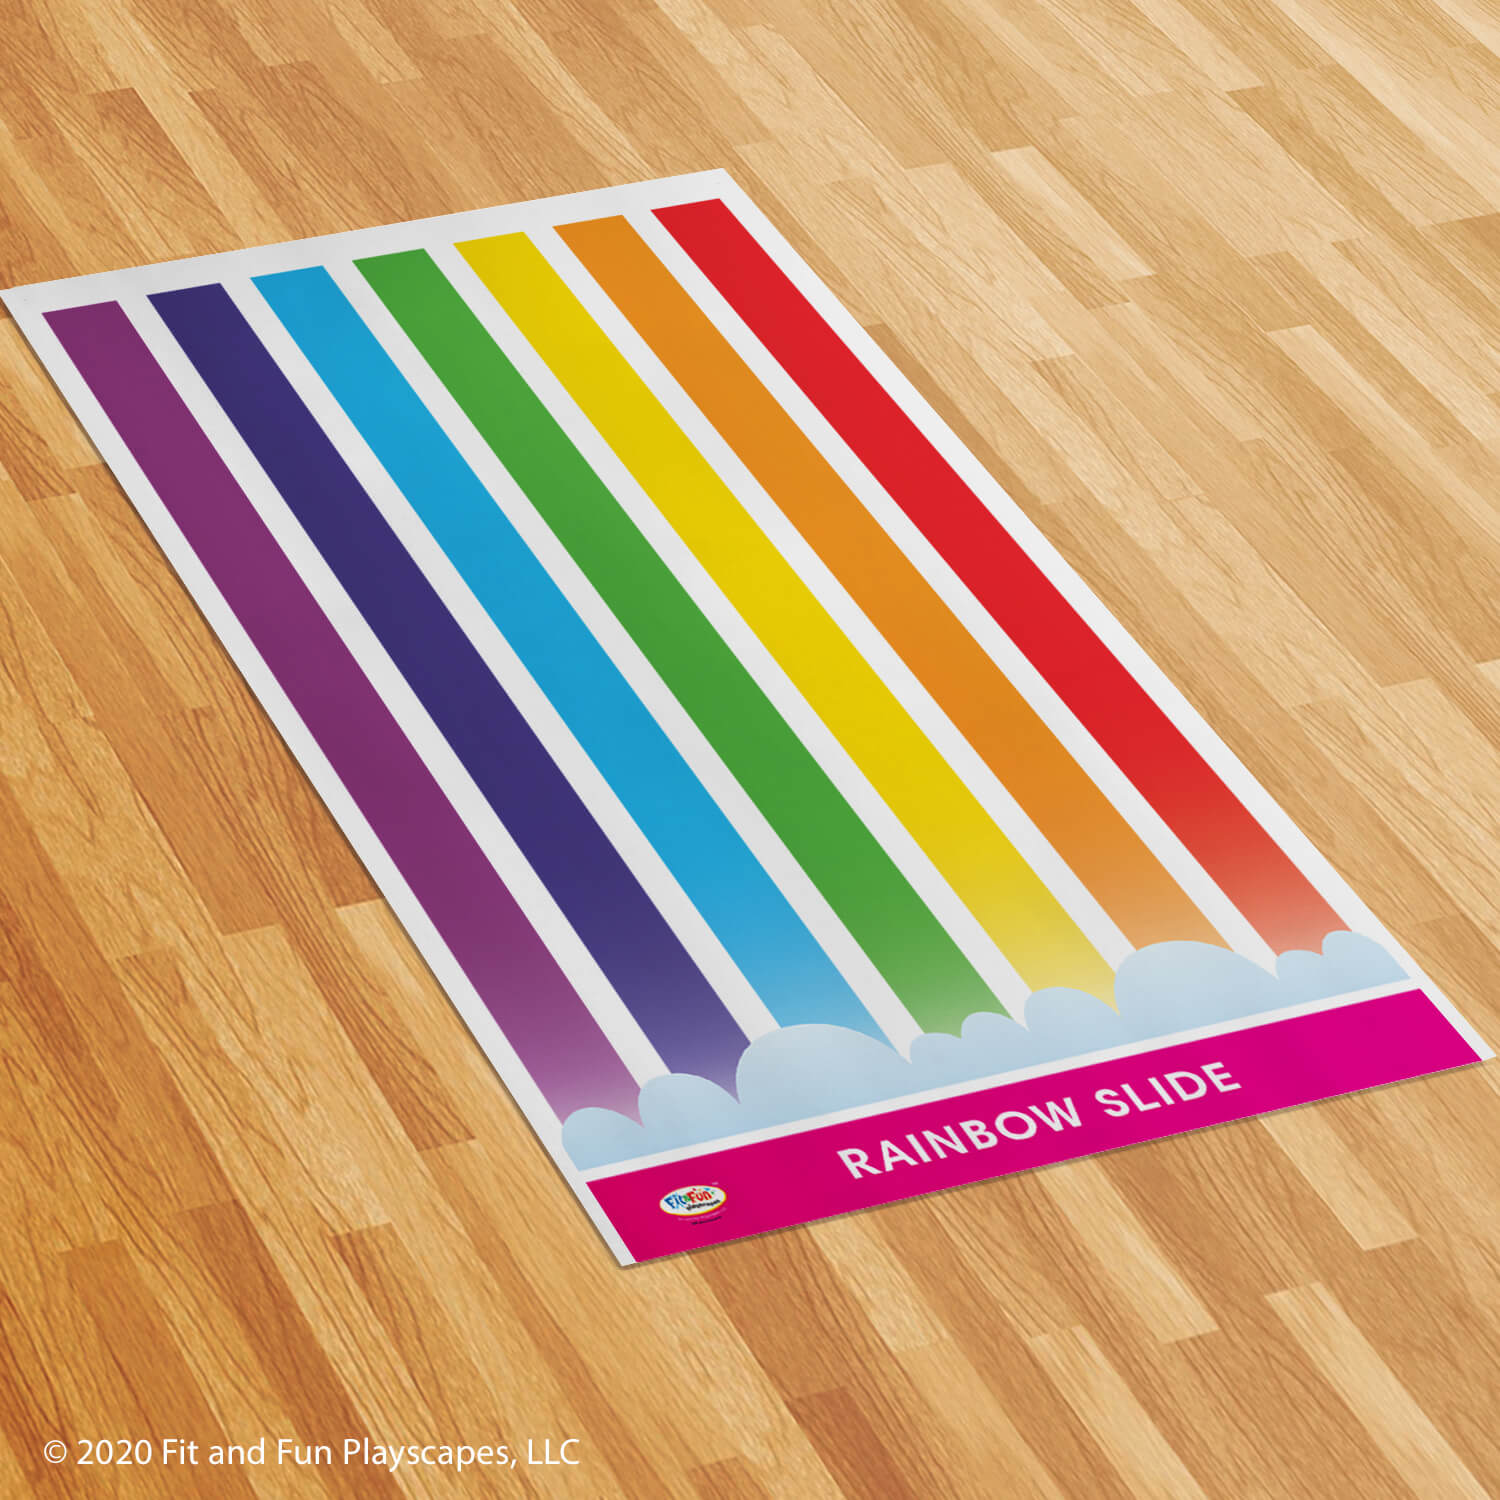 Rainbow Slide Roll-Out Activity